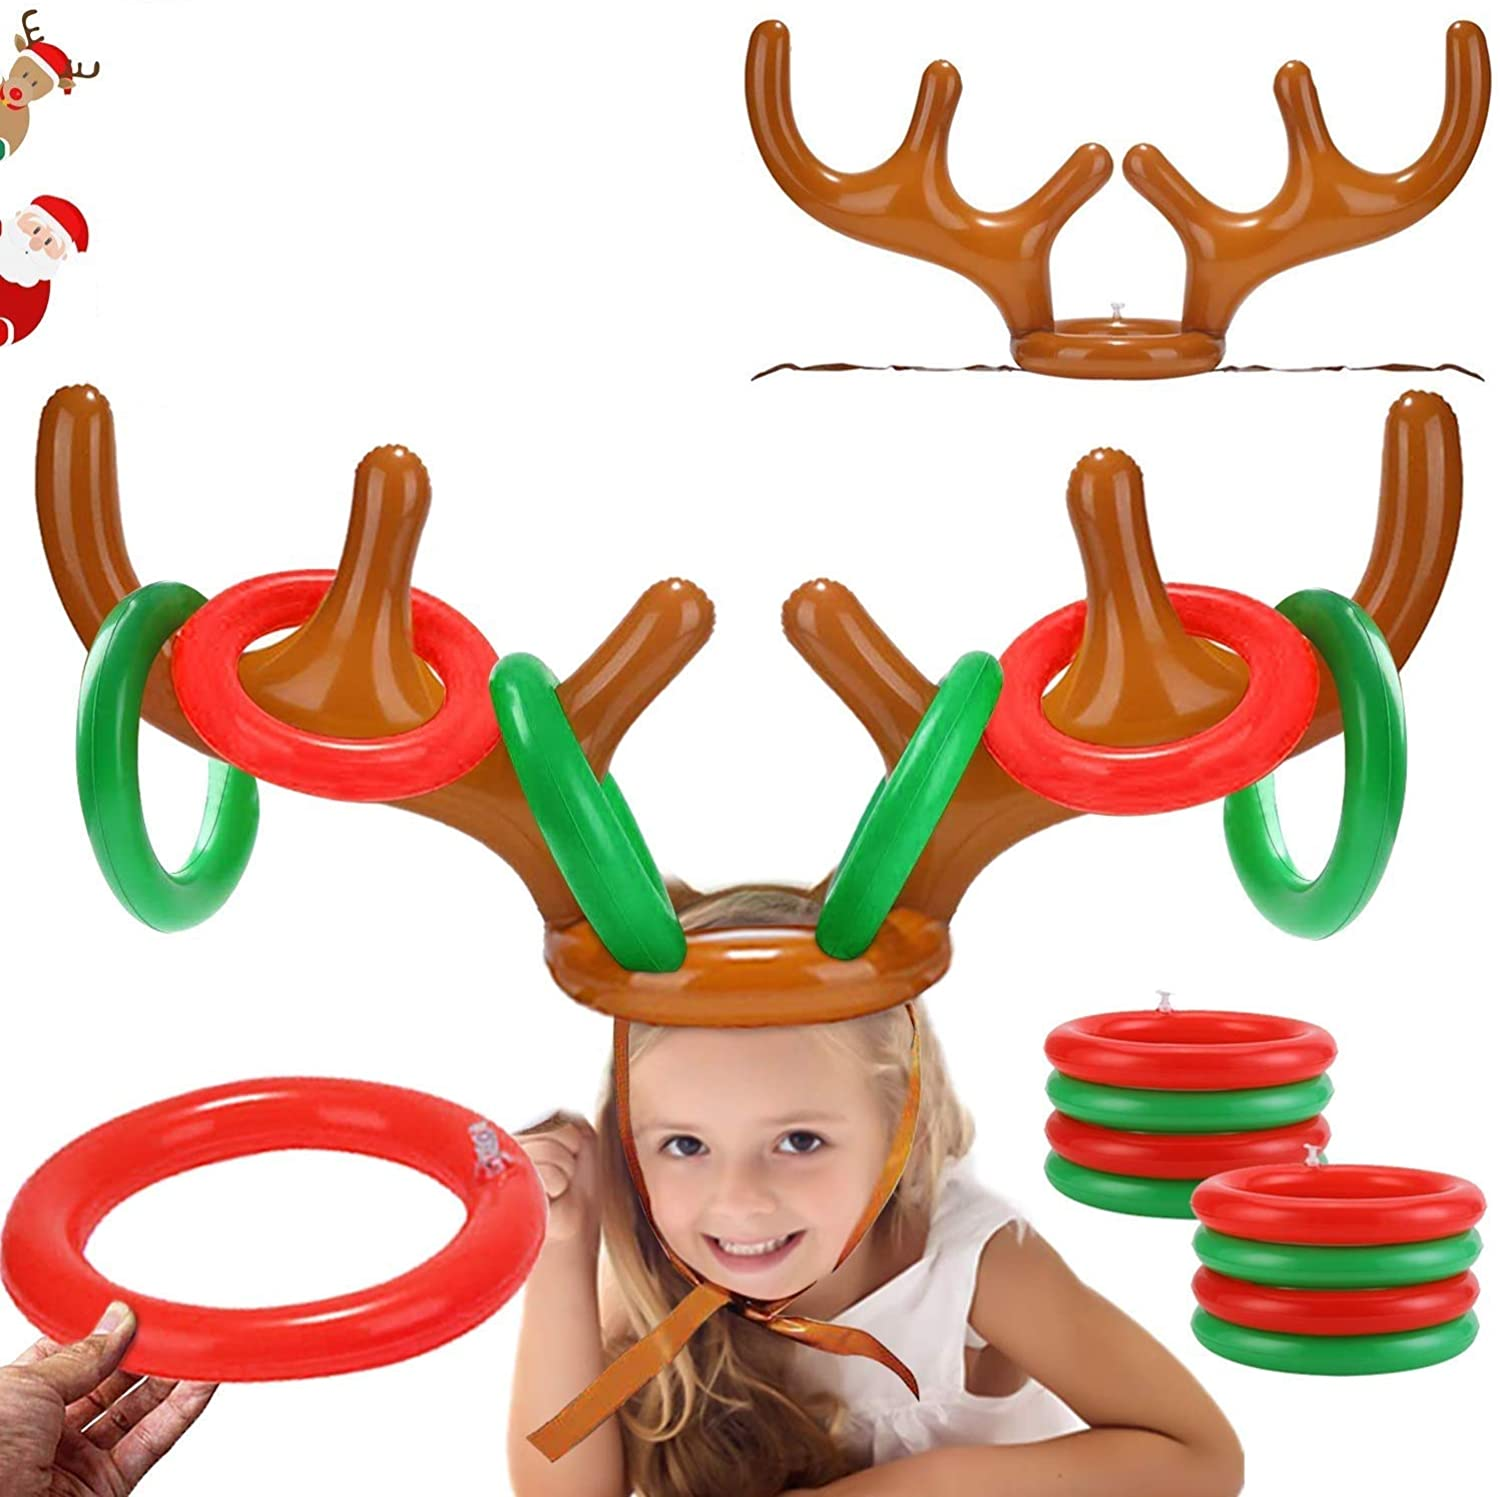 2PCS Christmas Party Toss Game Inflatable Reindeer Antler Hat with Rings for Kids Adults Family Xmas Fun Games(1 Pump,8 Rings, 2 Antlers)